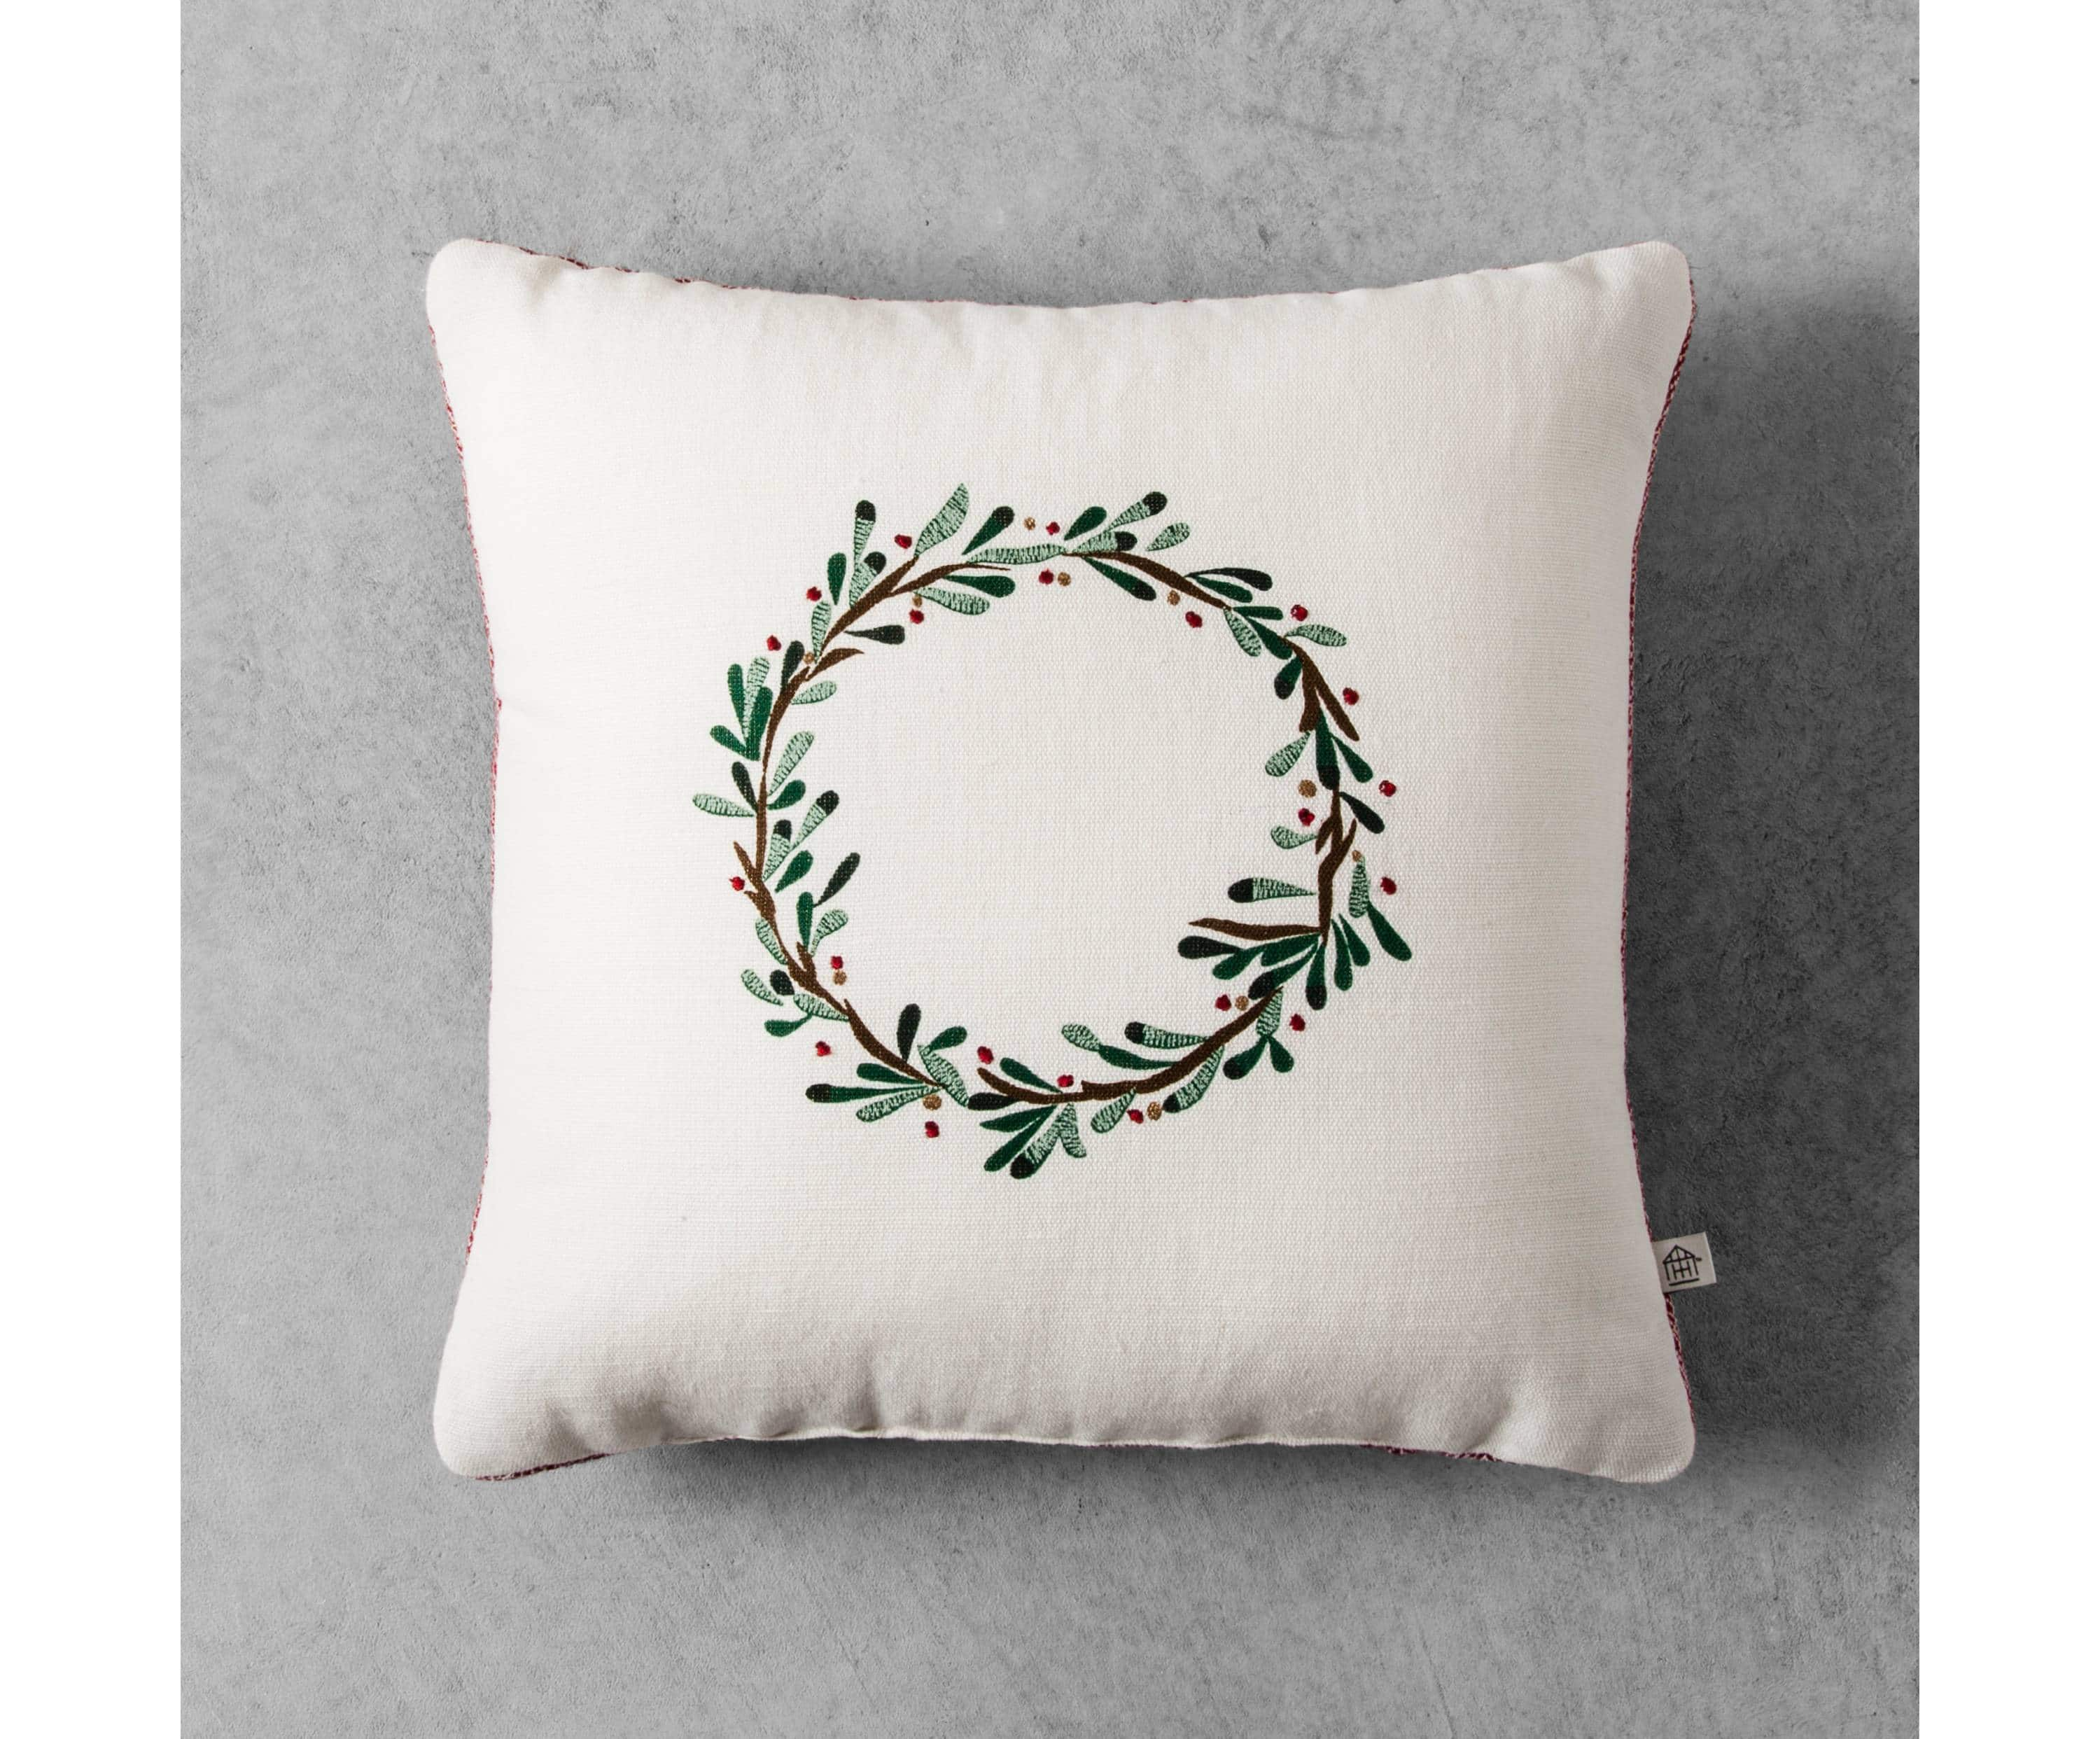 A white pillow with a green wreath motif on it.